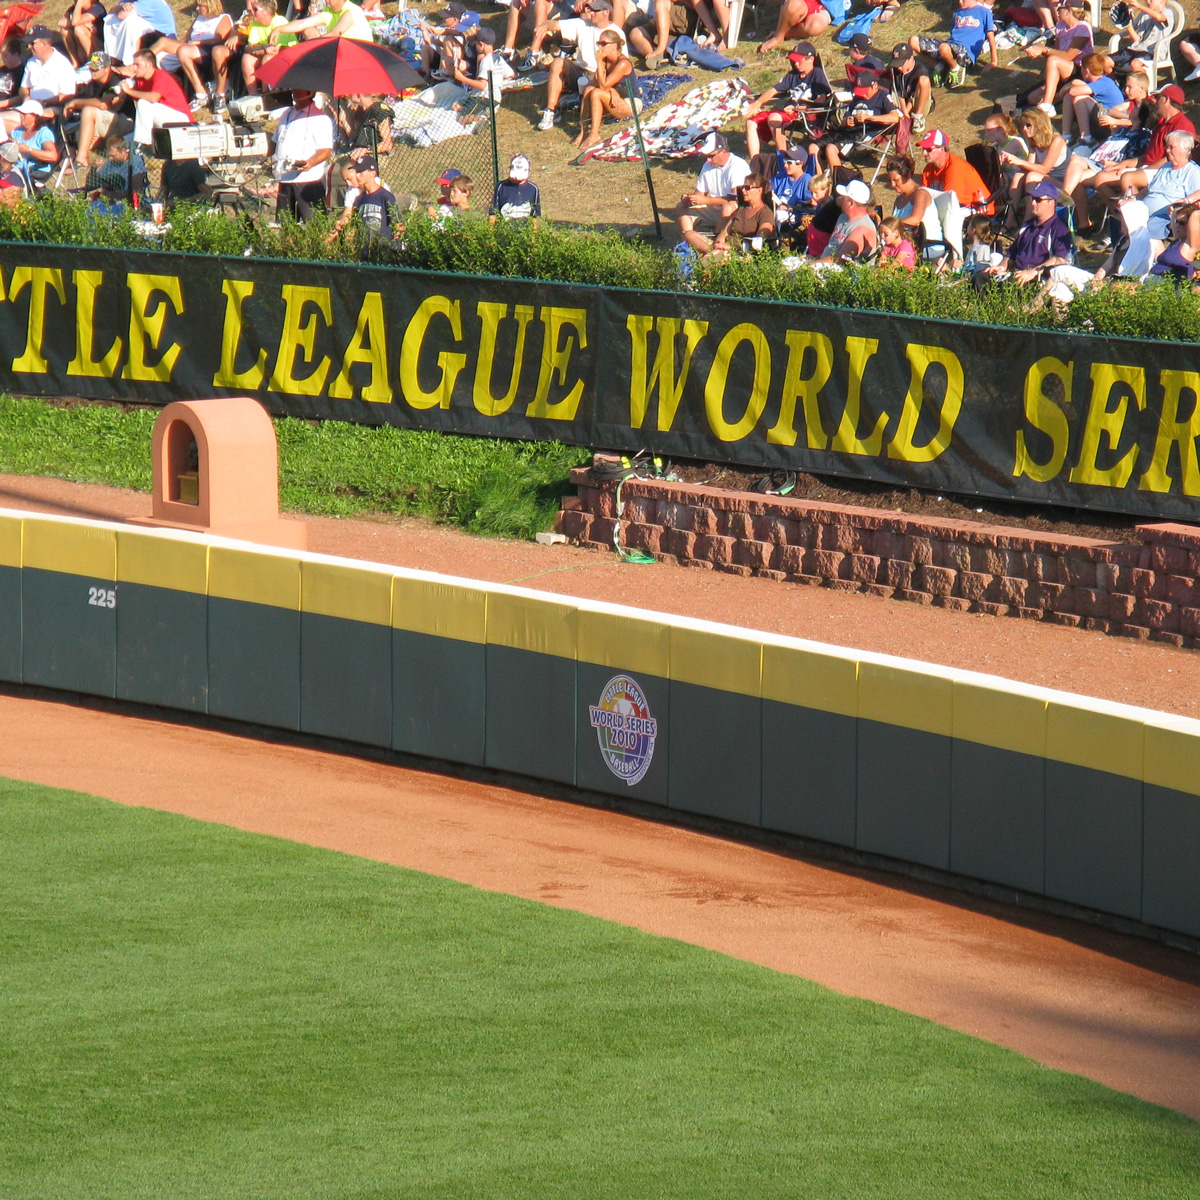 little league world series outfield fence top padding by mancino